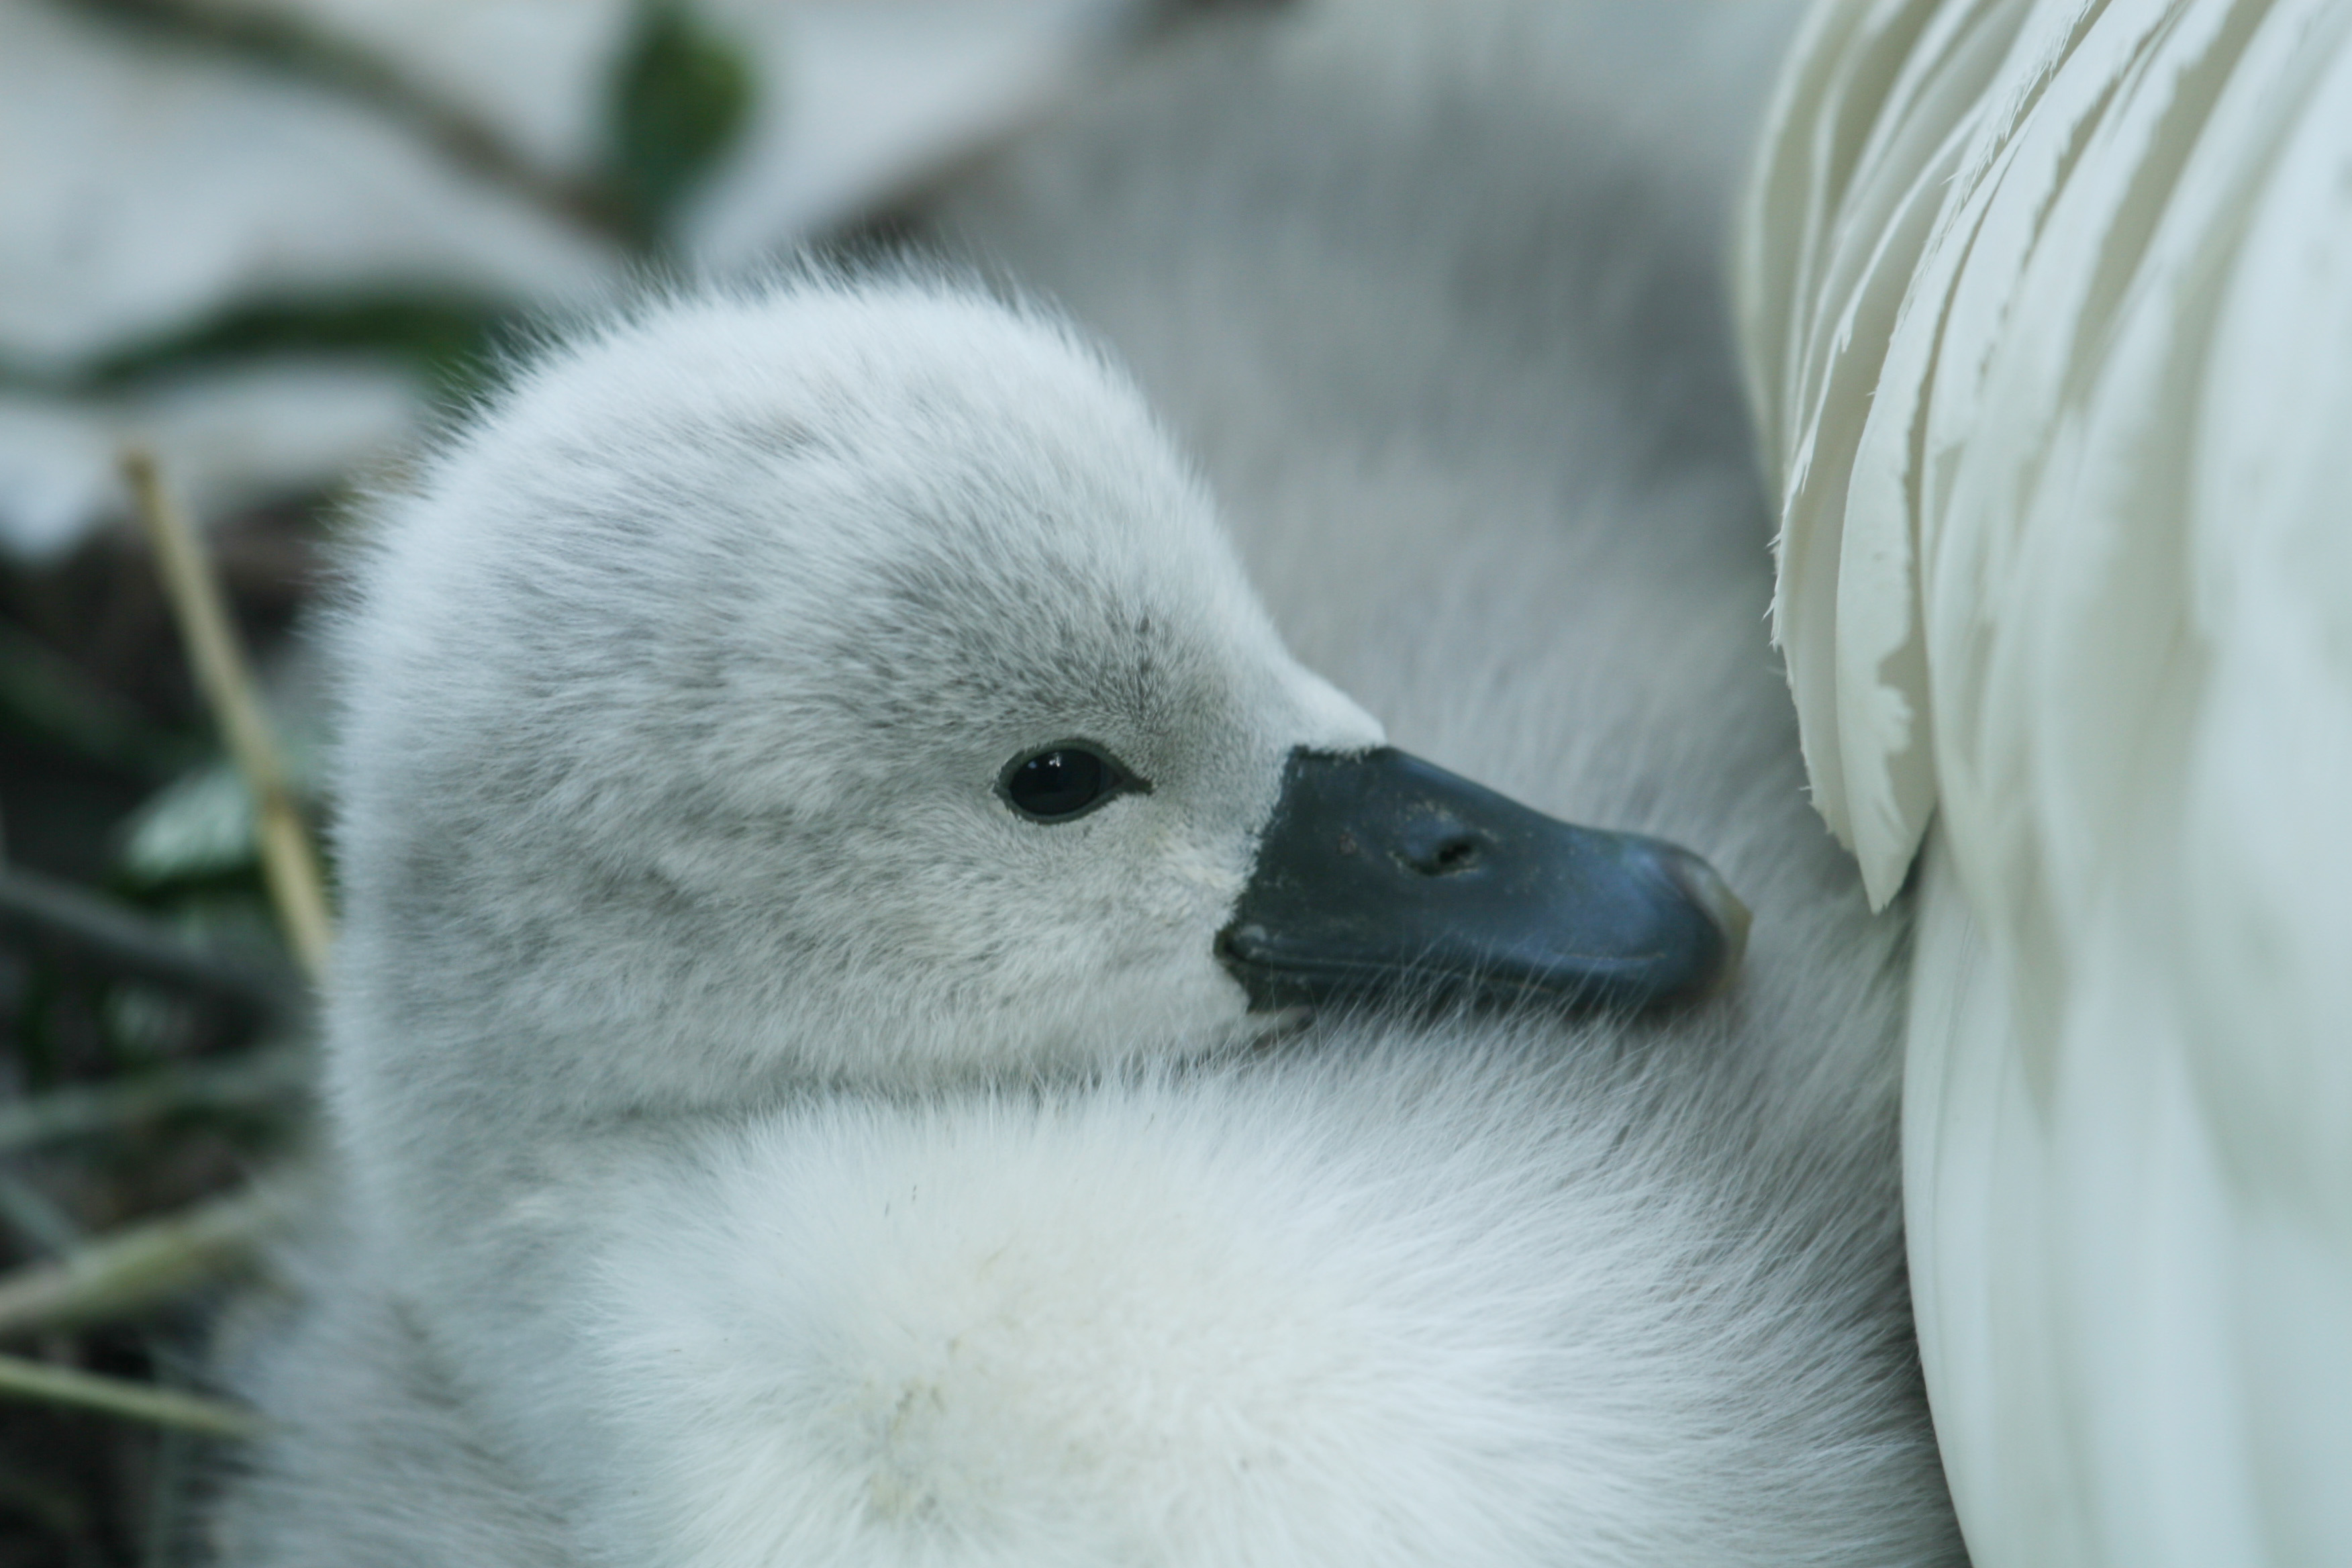 Cygnet peeking out